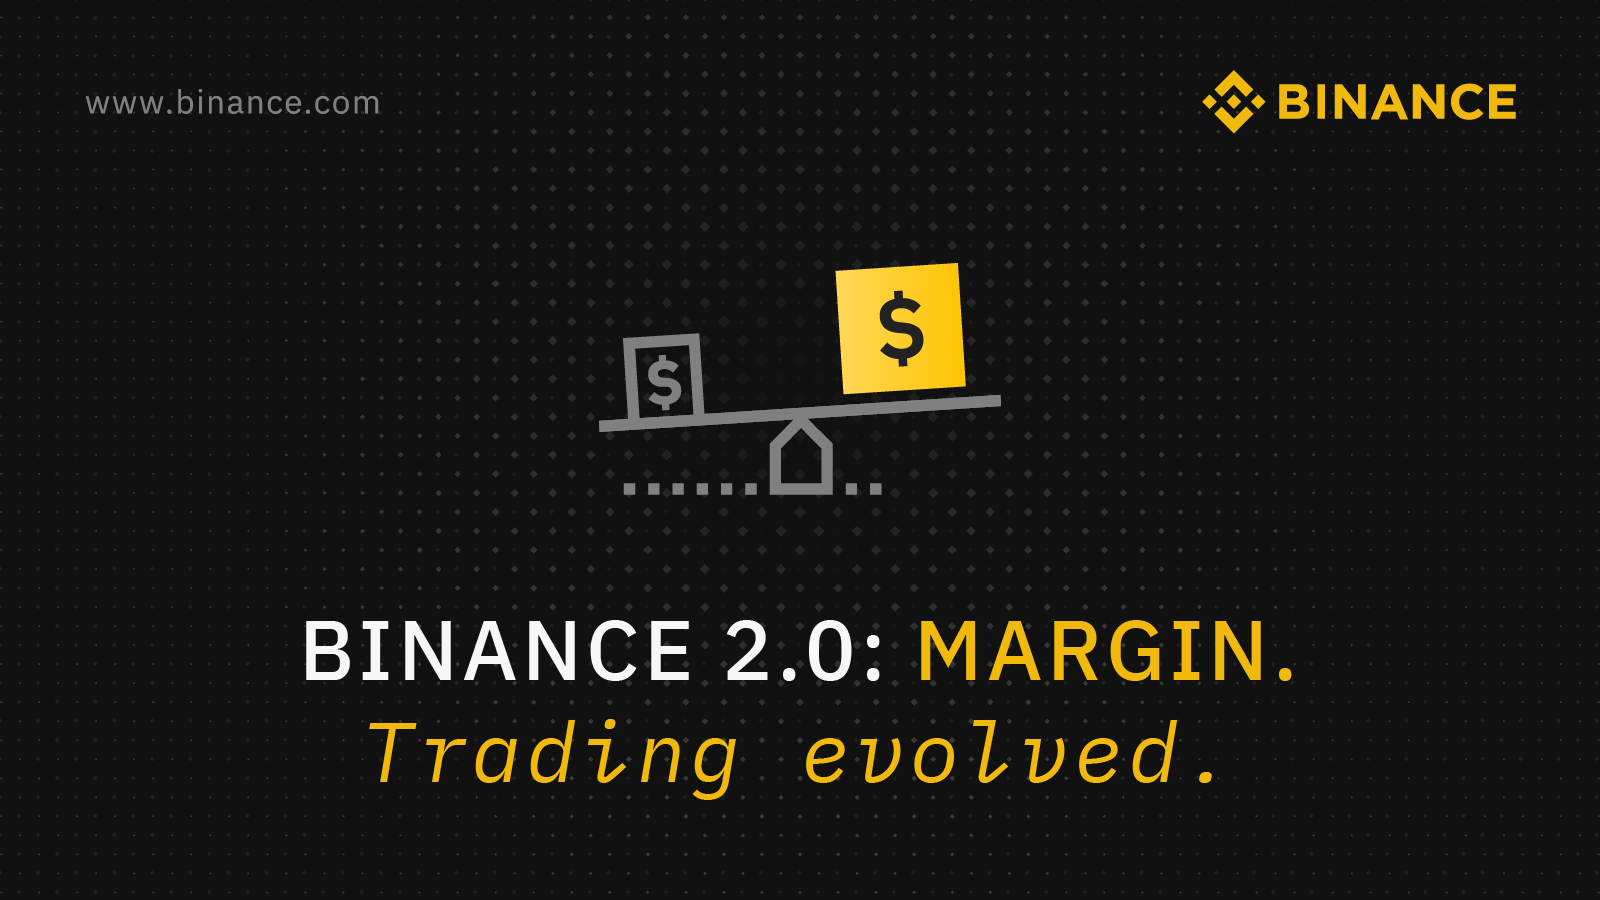 Binance Adds Margin as Exchange Competition Heats Up